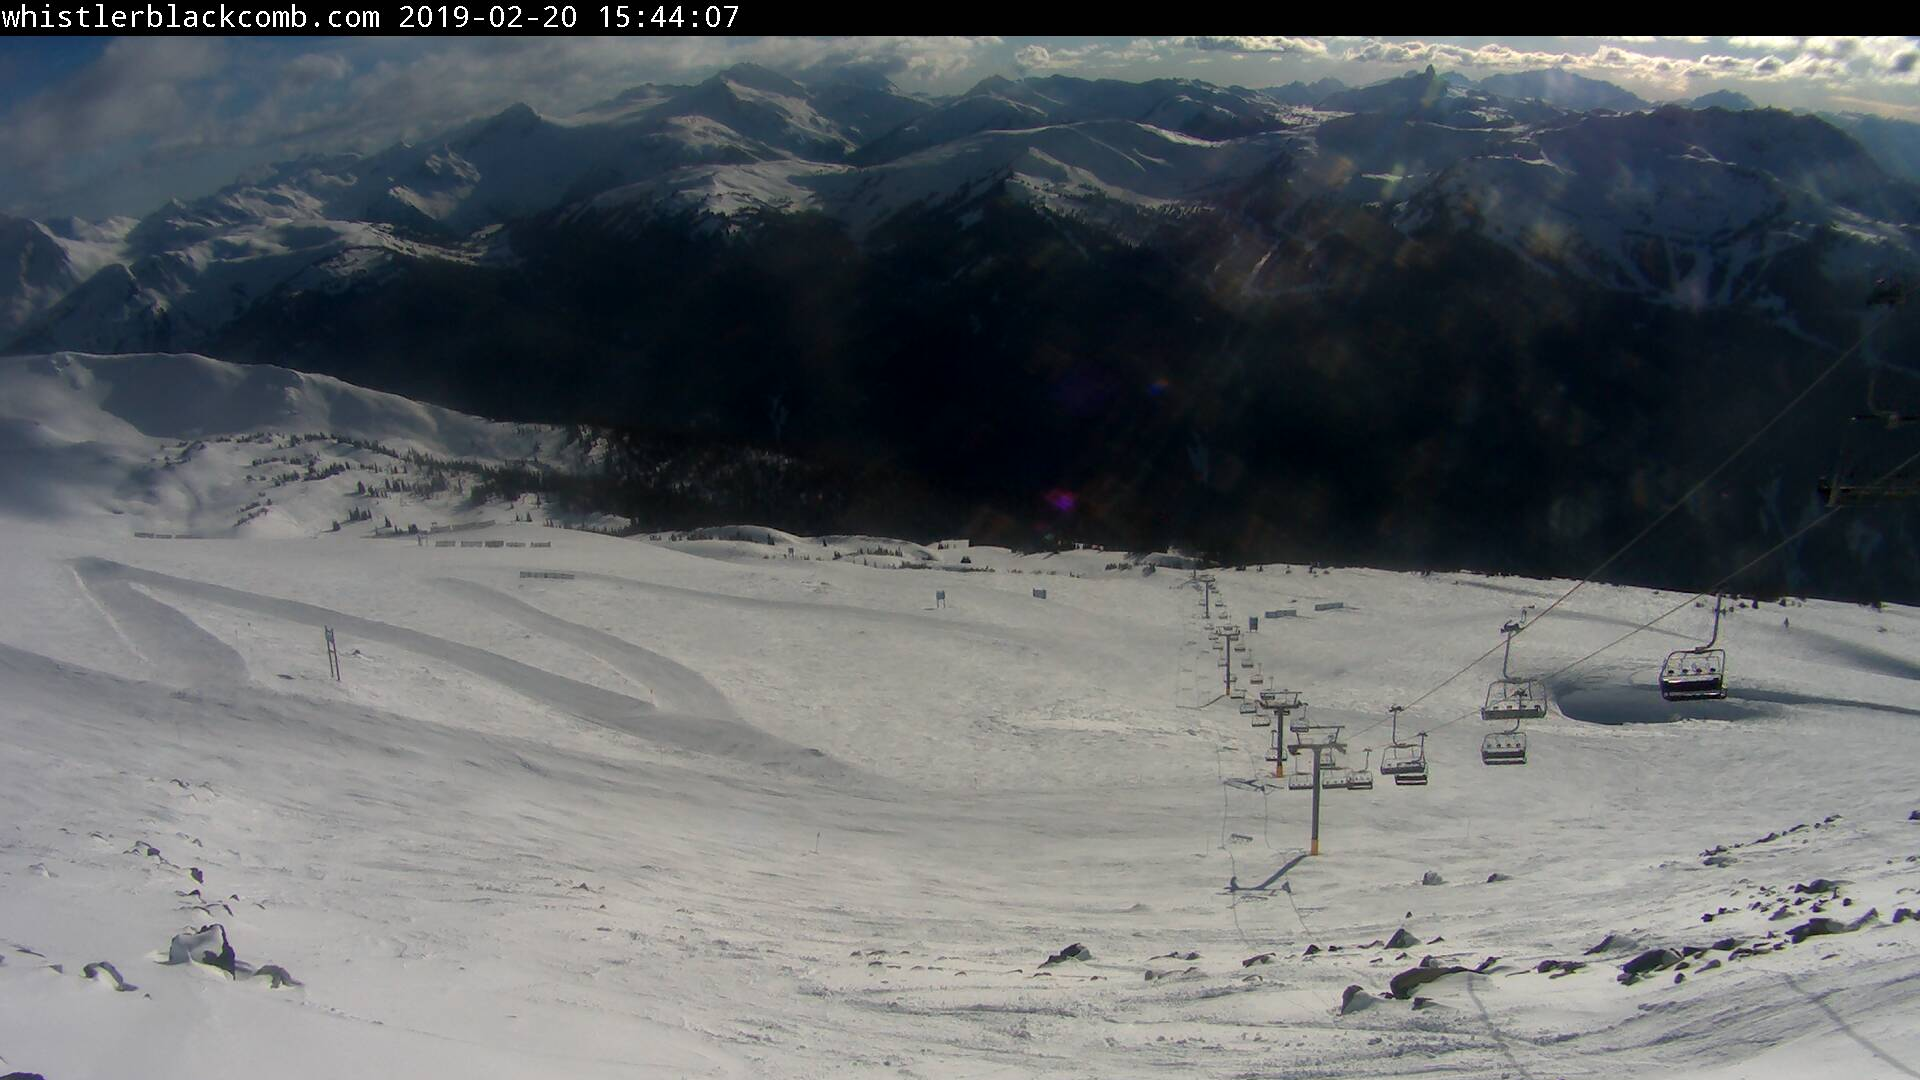 Blackcomb 7th Heaven Lift Line Webcam